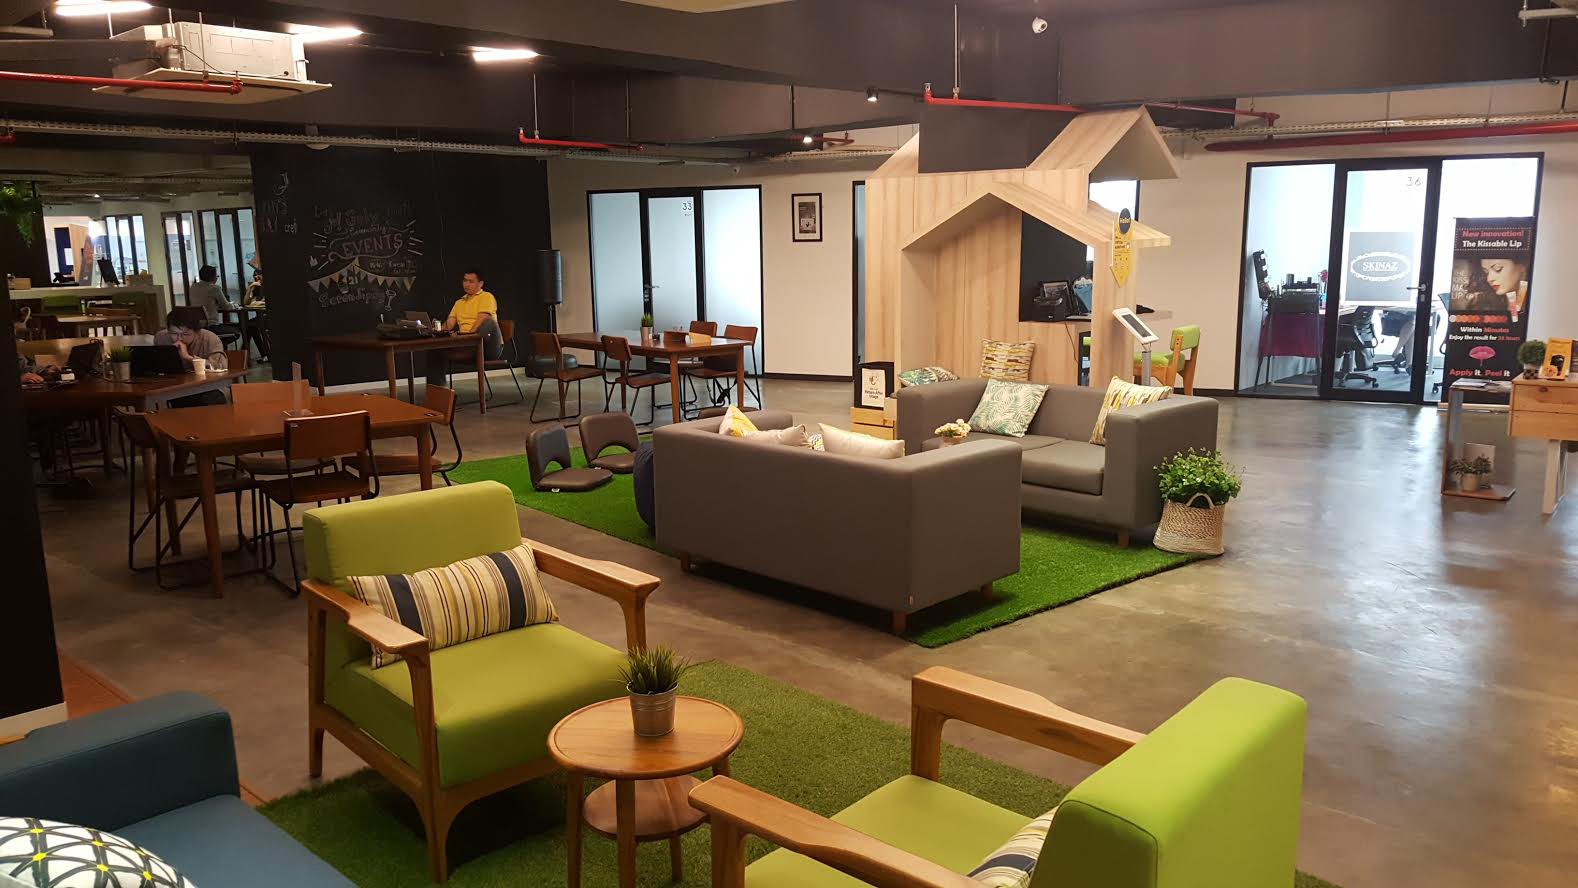 Workspace, Office Space, Coworking Space Jakarta Indonesia ...